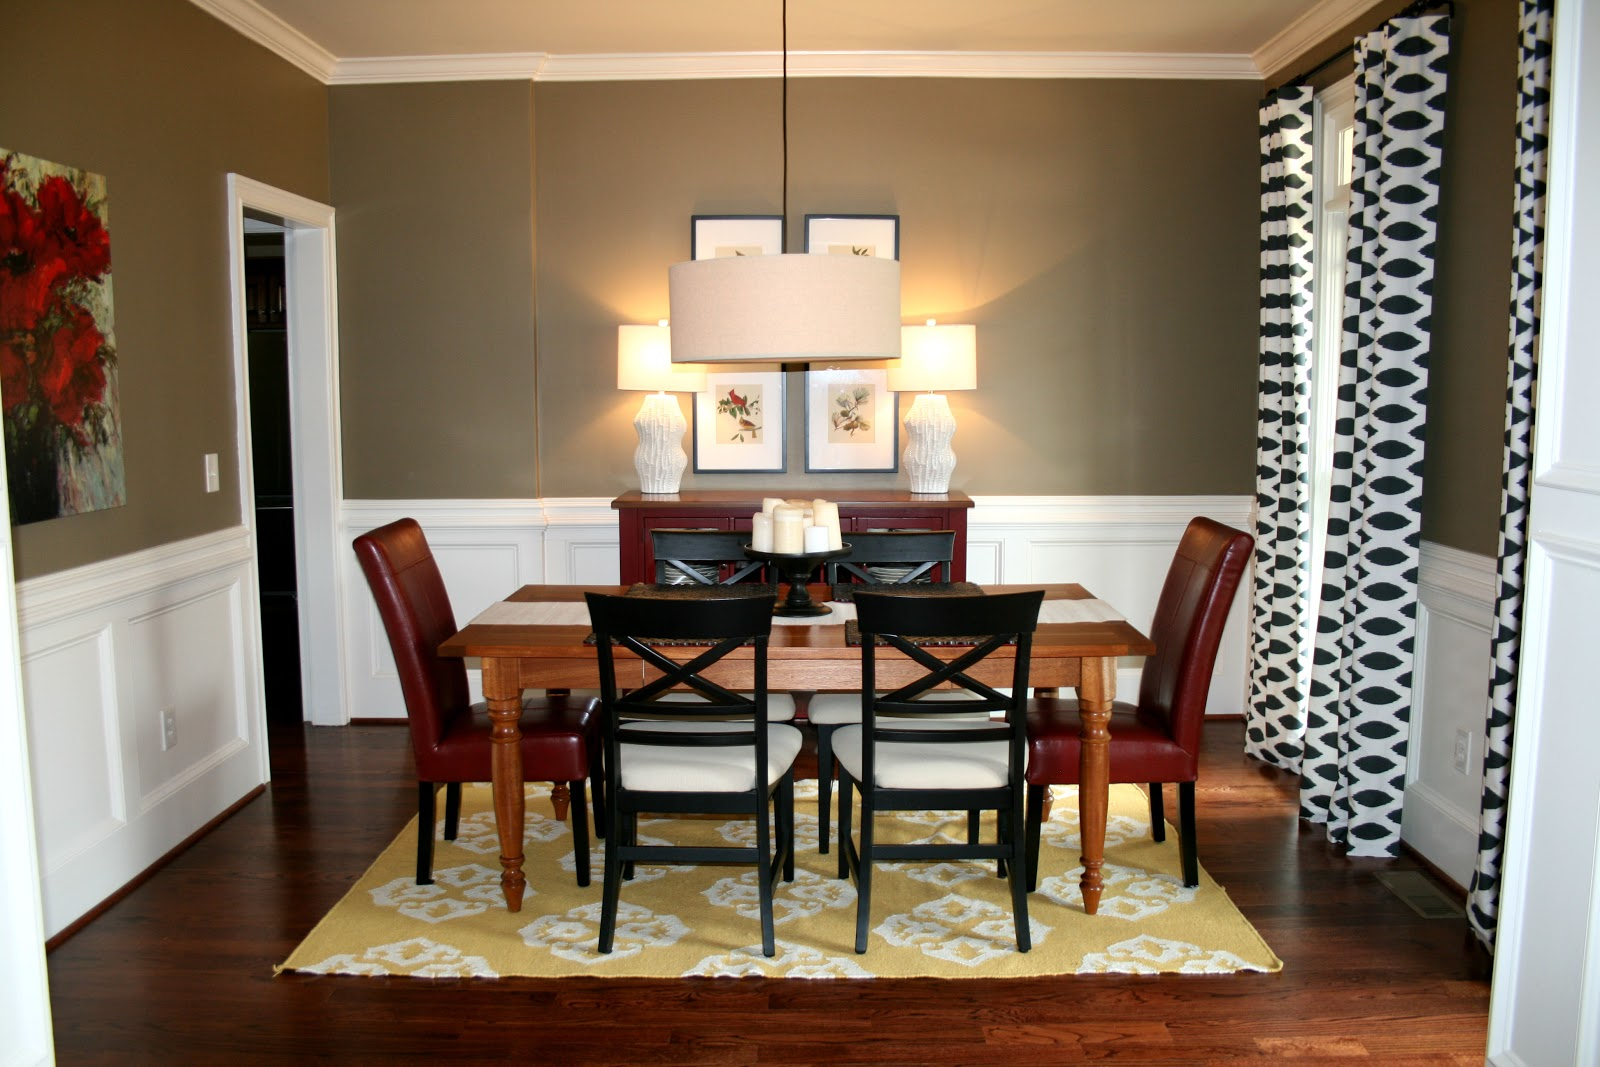 The bozeman bungalow march 2013 for Dining room ideas 2013